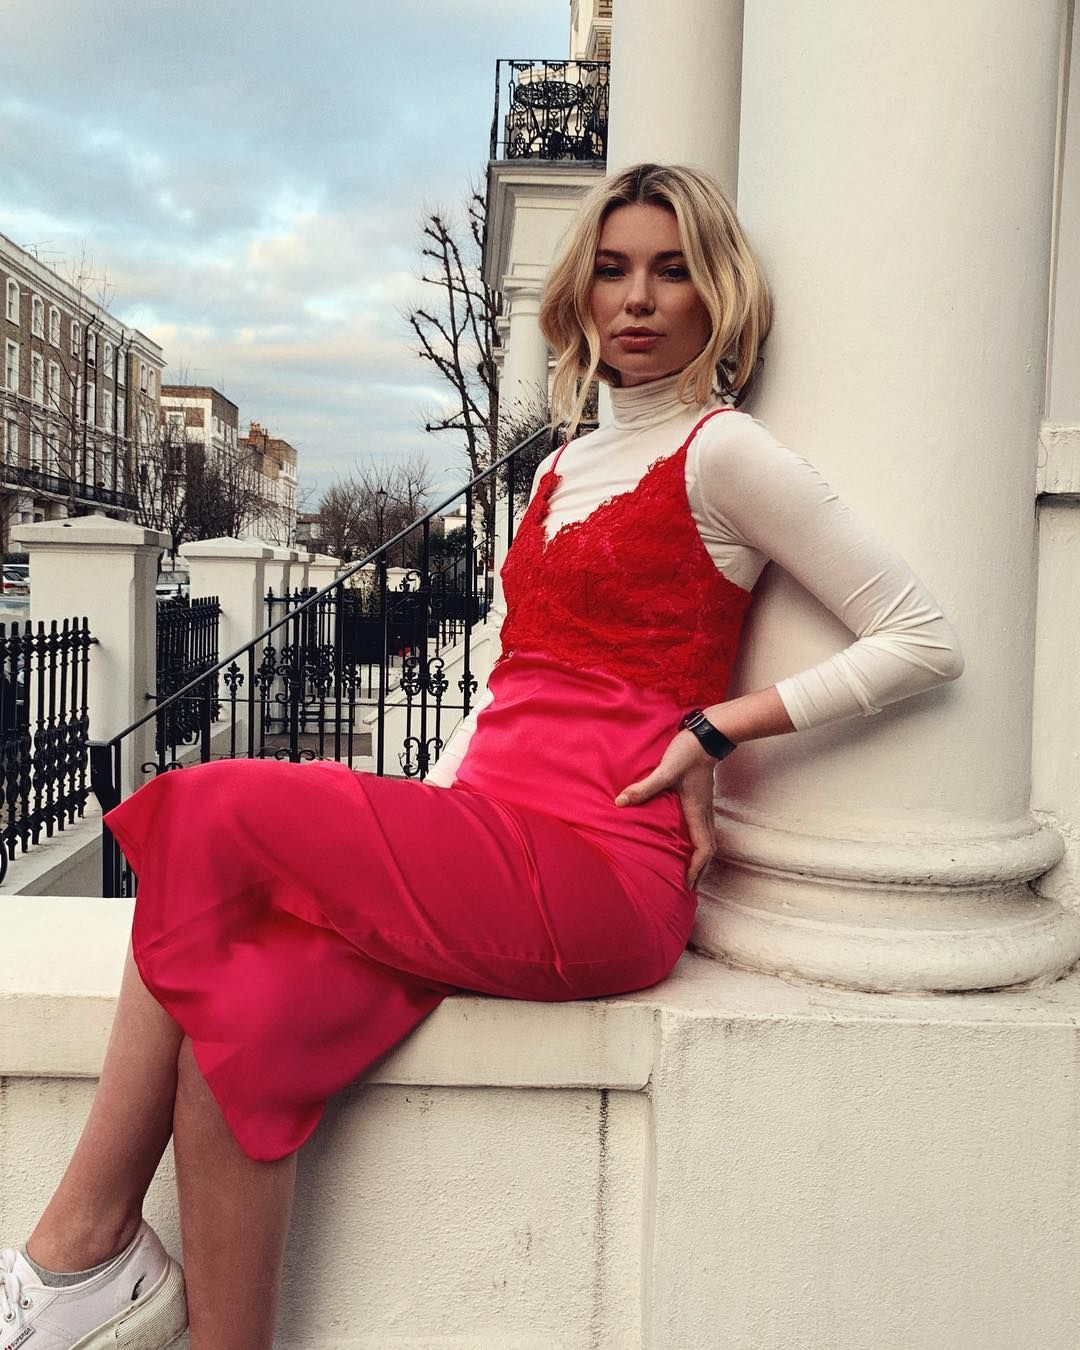 Image may contain:Made in Chelsea cast are actually from, Made in Chelsea, cast, place of birth, from, Toff, Georgia Toffolo, Woman, Dress, Sleeve, Female, Footwear, Shoe, Human, Person, Robe, Evening Dress, Gown, Fashion, Clothing, Apparel